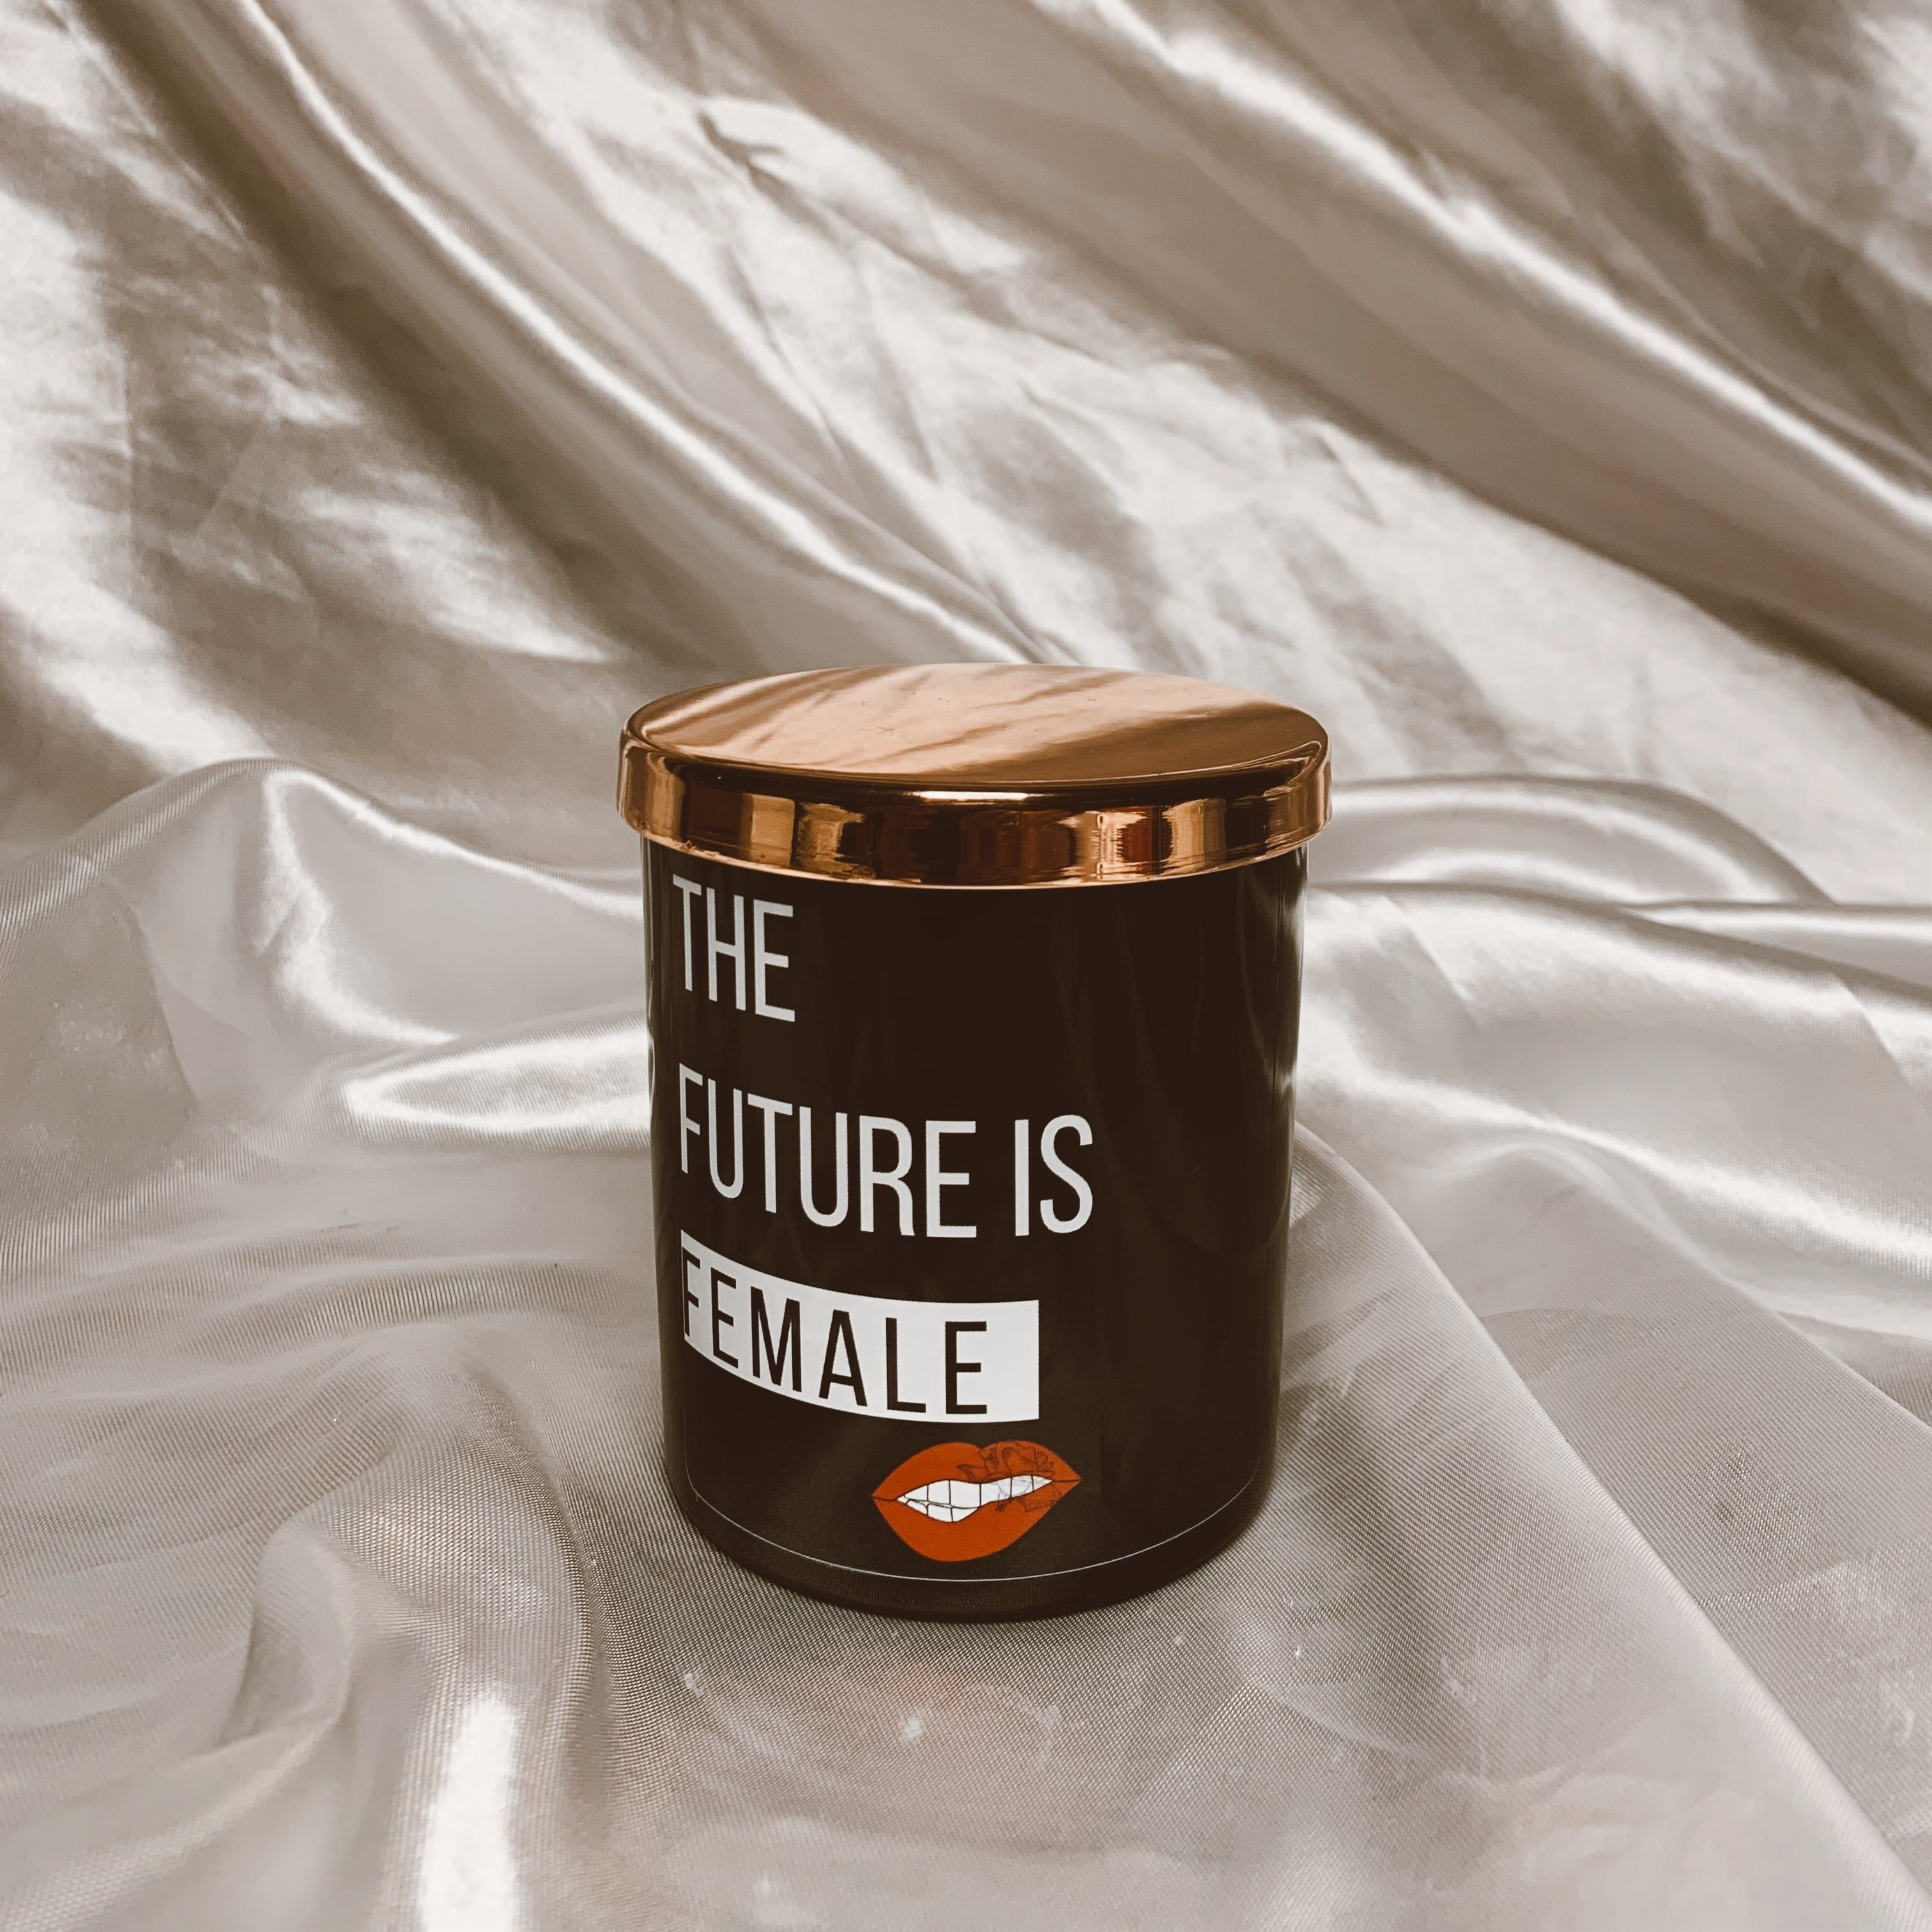 THE FUTURE IS FEMALE SCENTED CANDLE - 200g